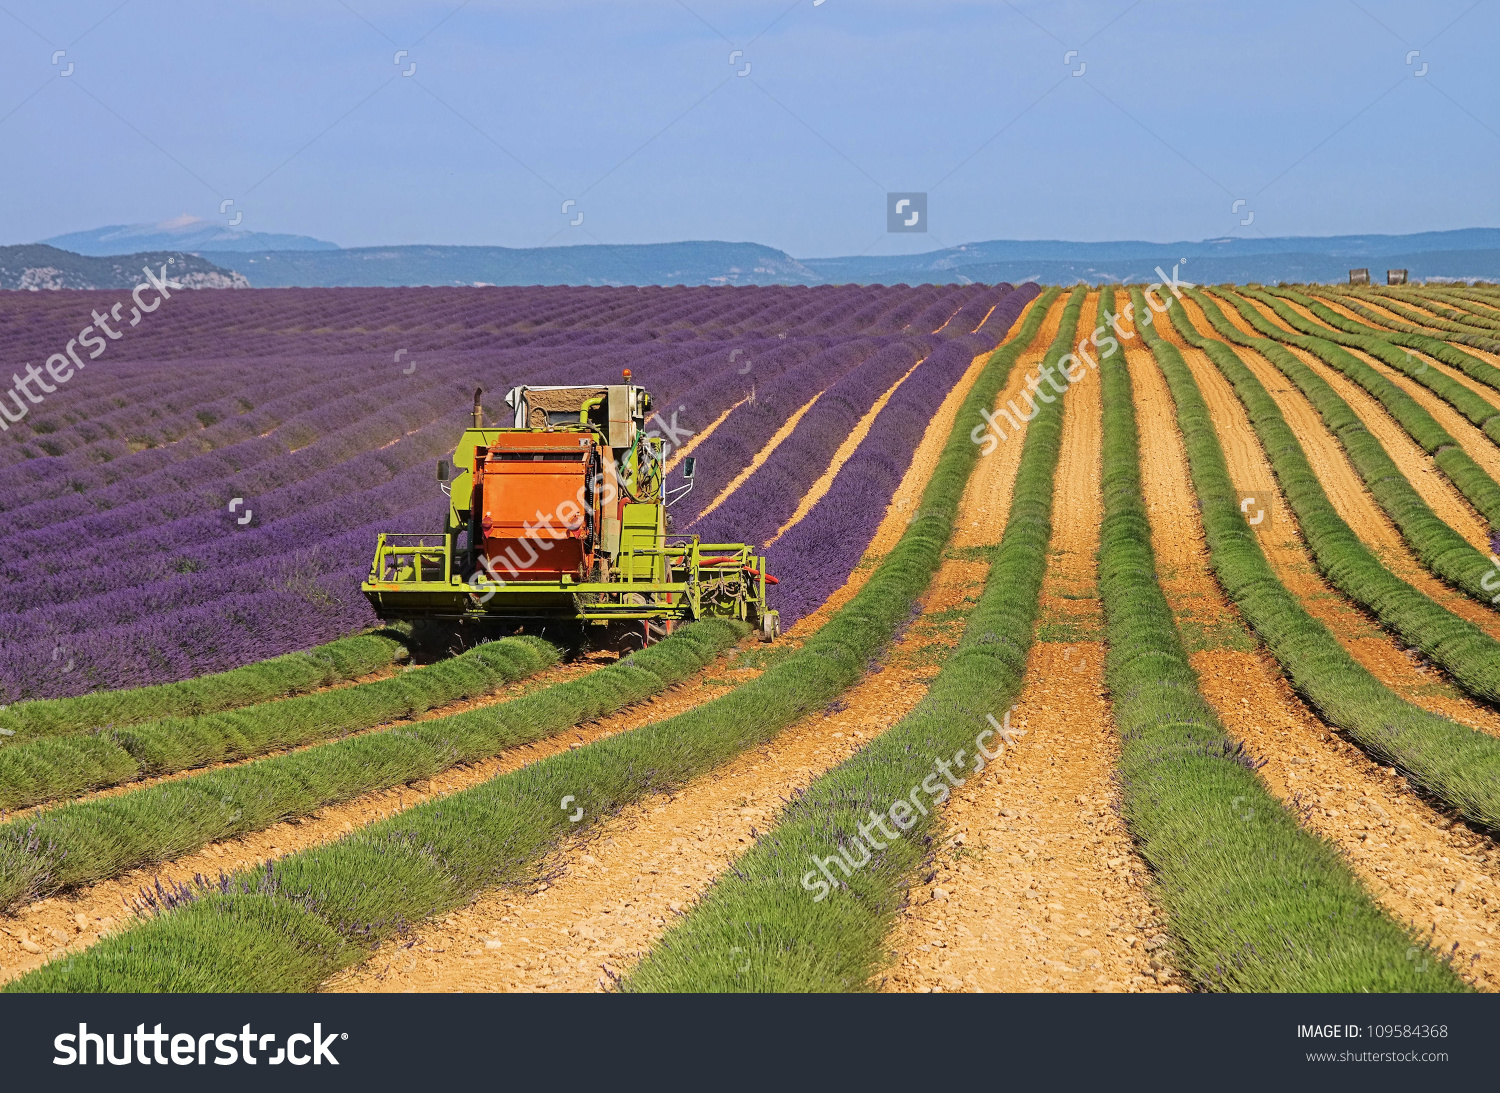 Lavender Field Harvest Stock Photo 109584368 : Shutterstock.